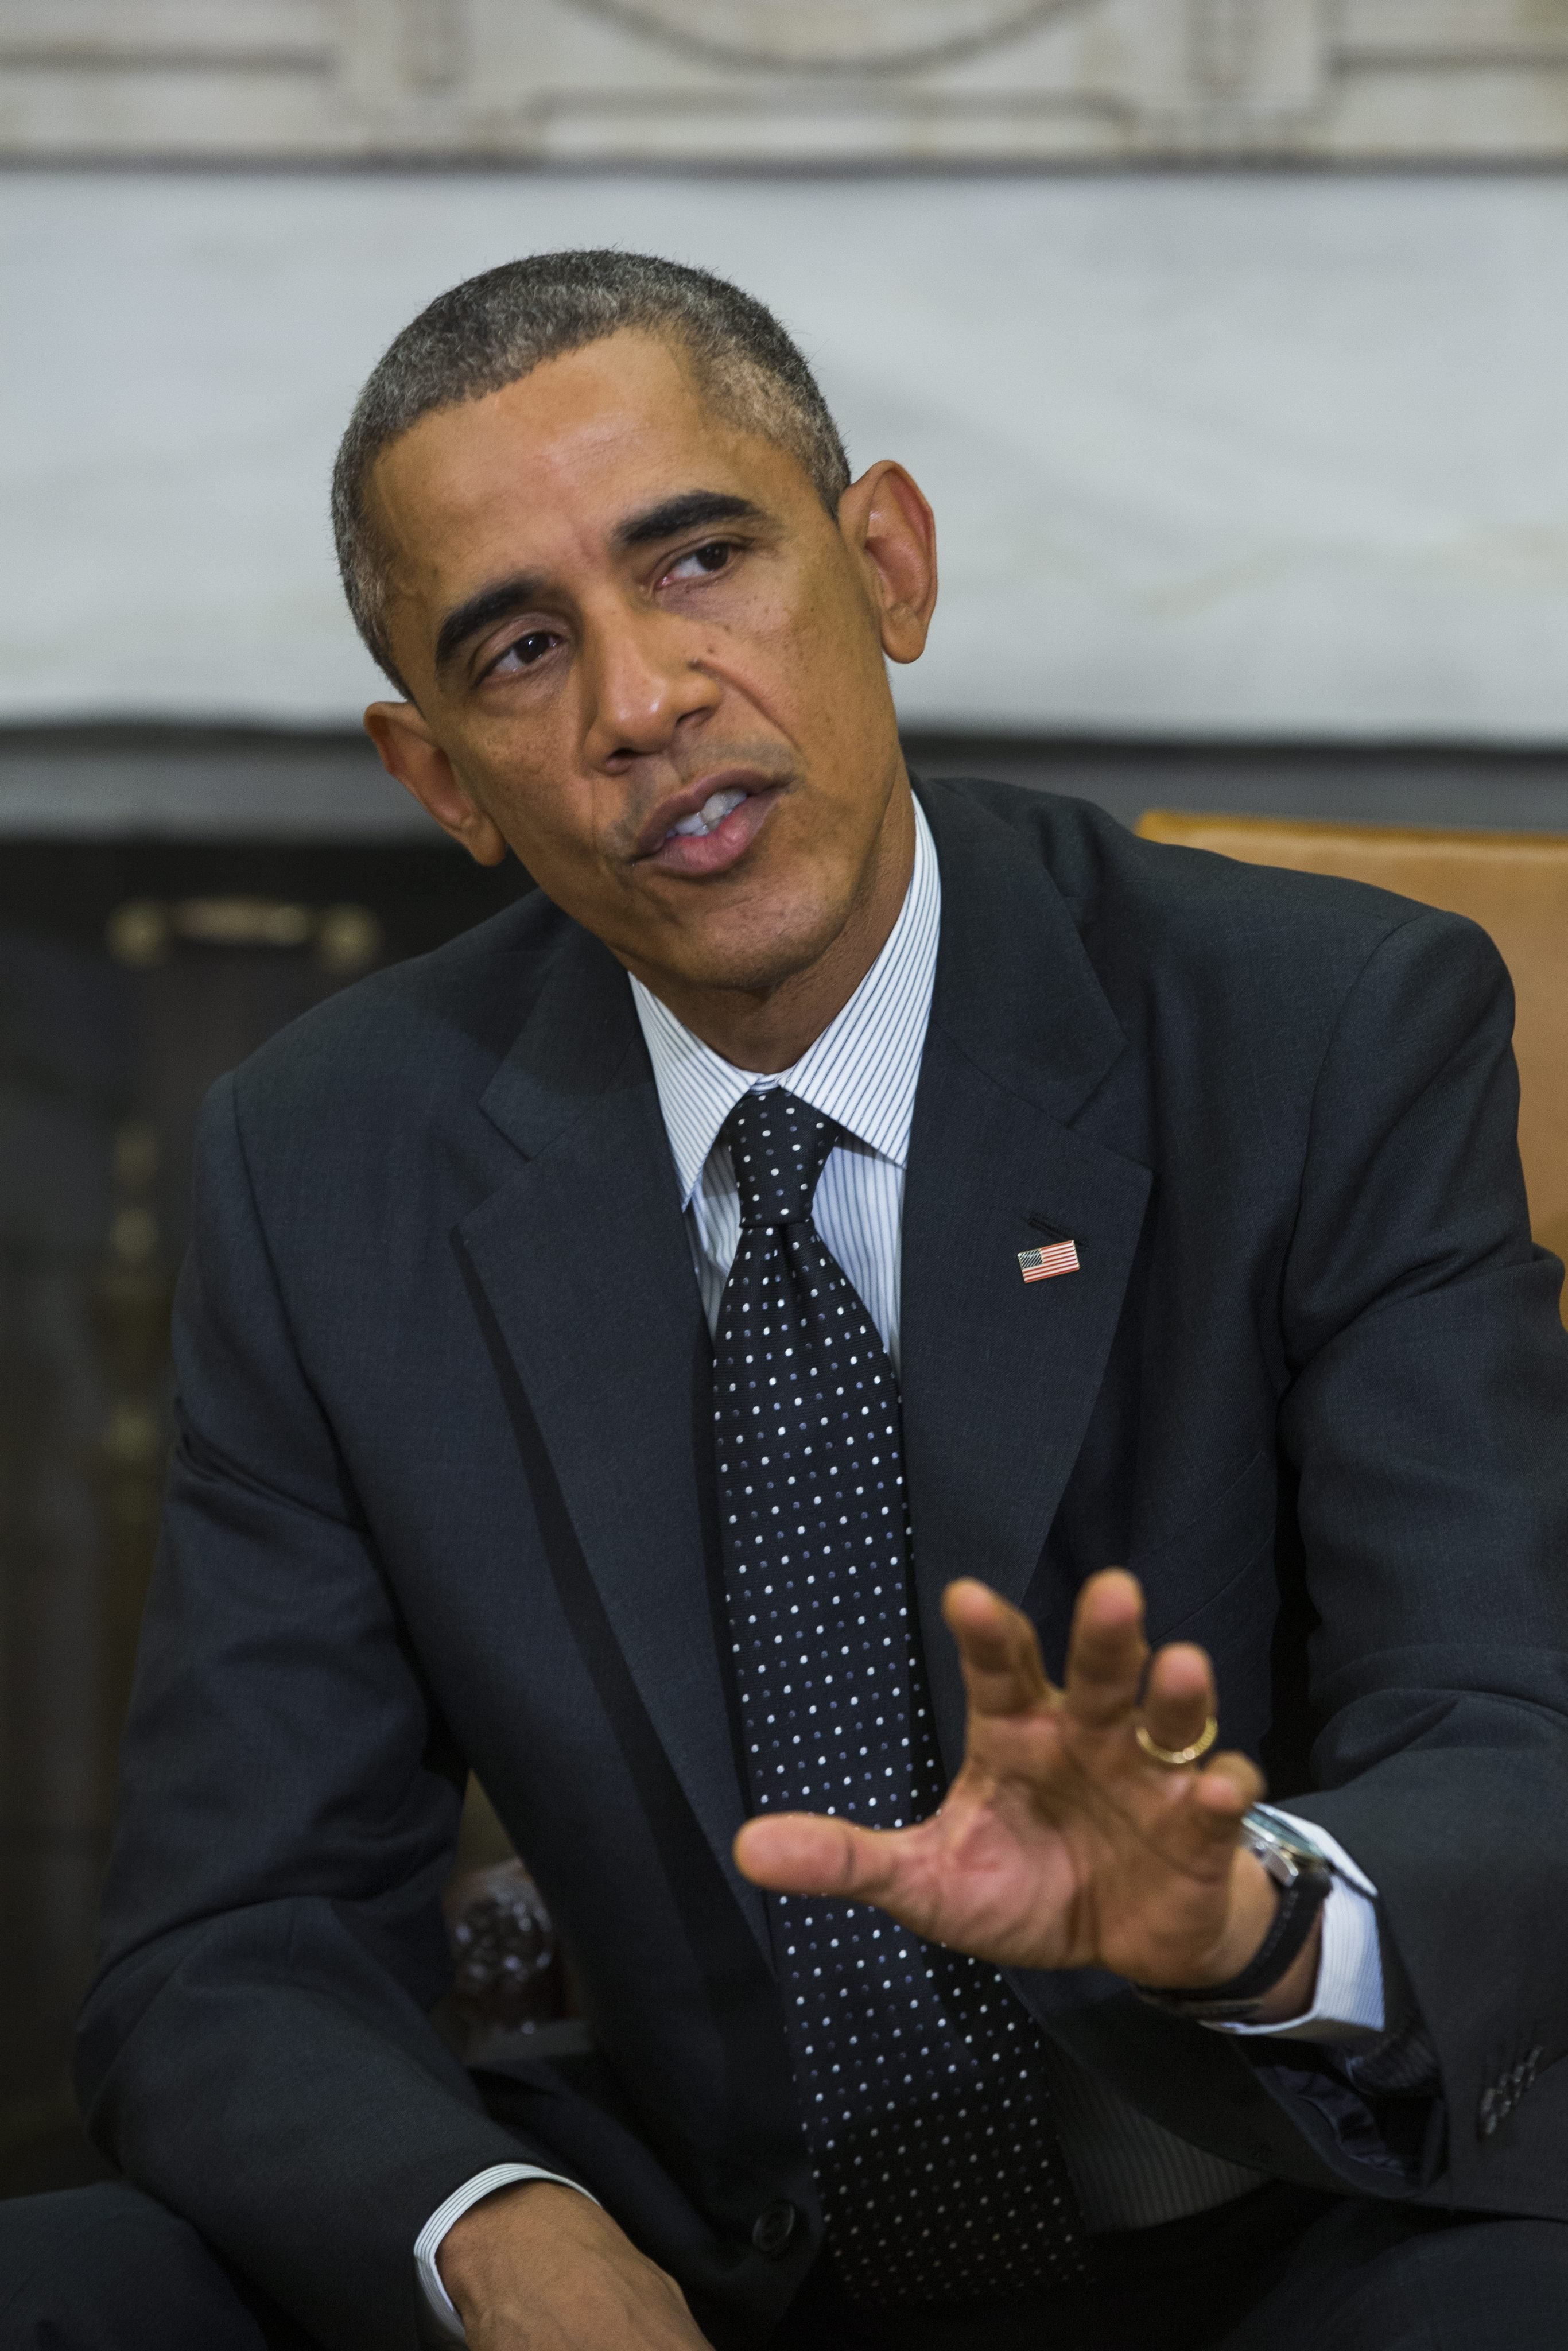 President Barack Obama speaks to the media after holding a meeting with his newly-appointed 'Ebola Response Coordinator' Ron Klain, along with other members of the team coordinating the Obama administration's ebola response efforts, in the Oval Office of the White House in Washington on Oct. 22, 2014.